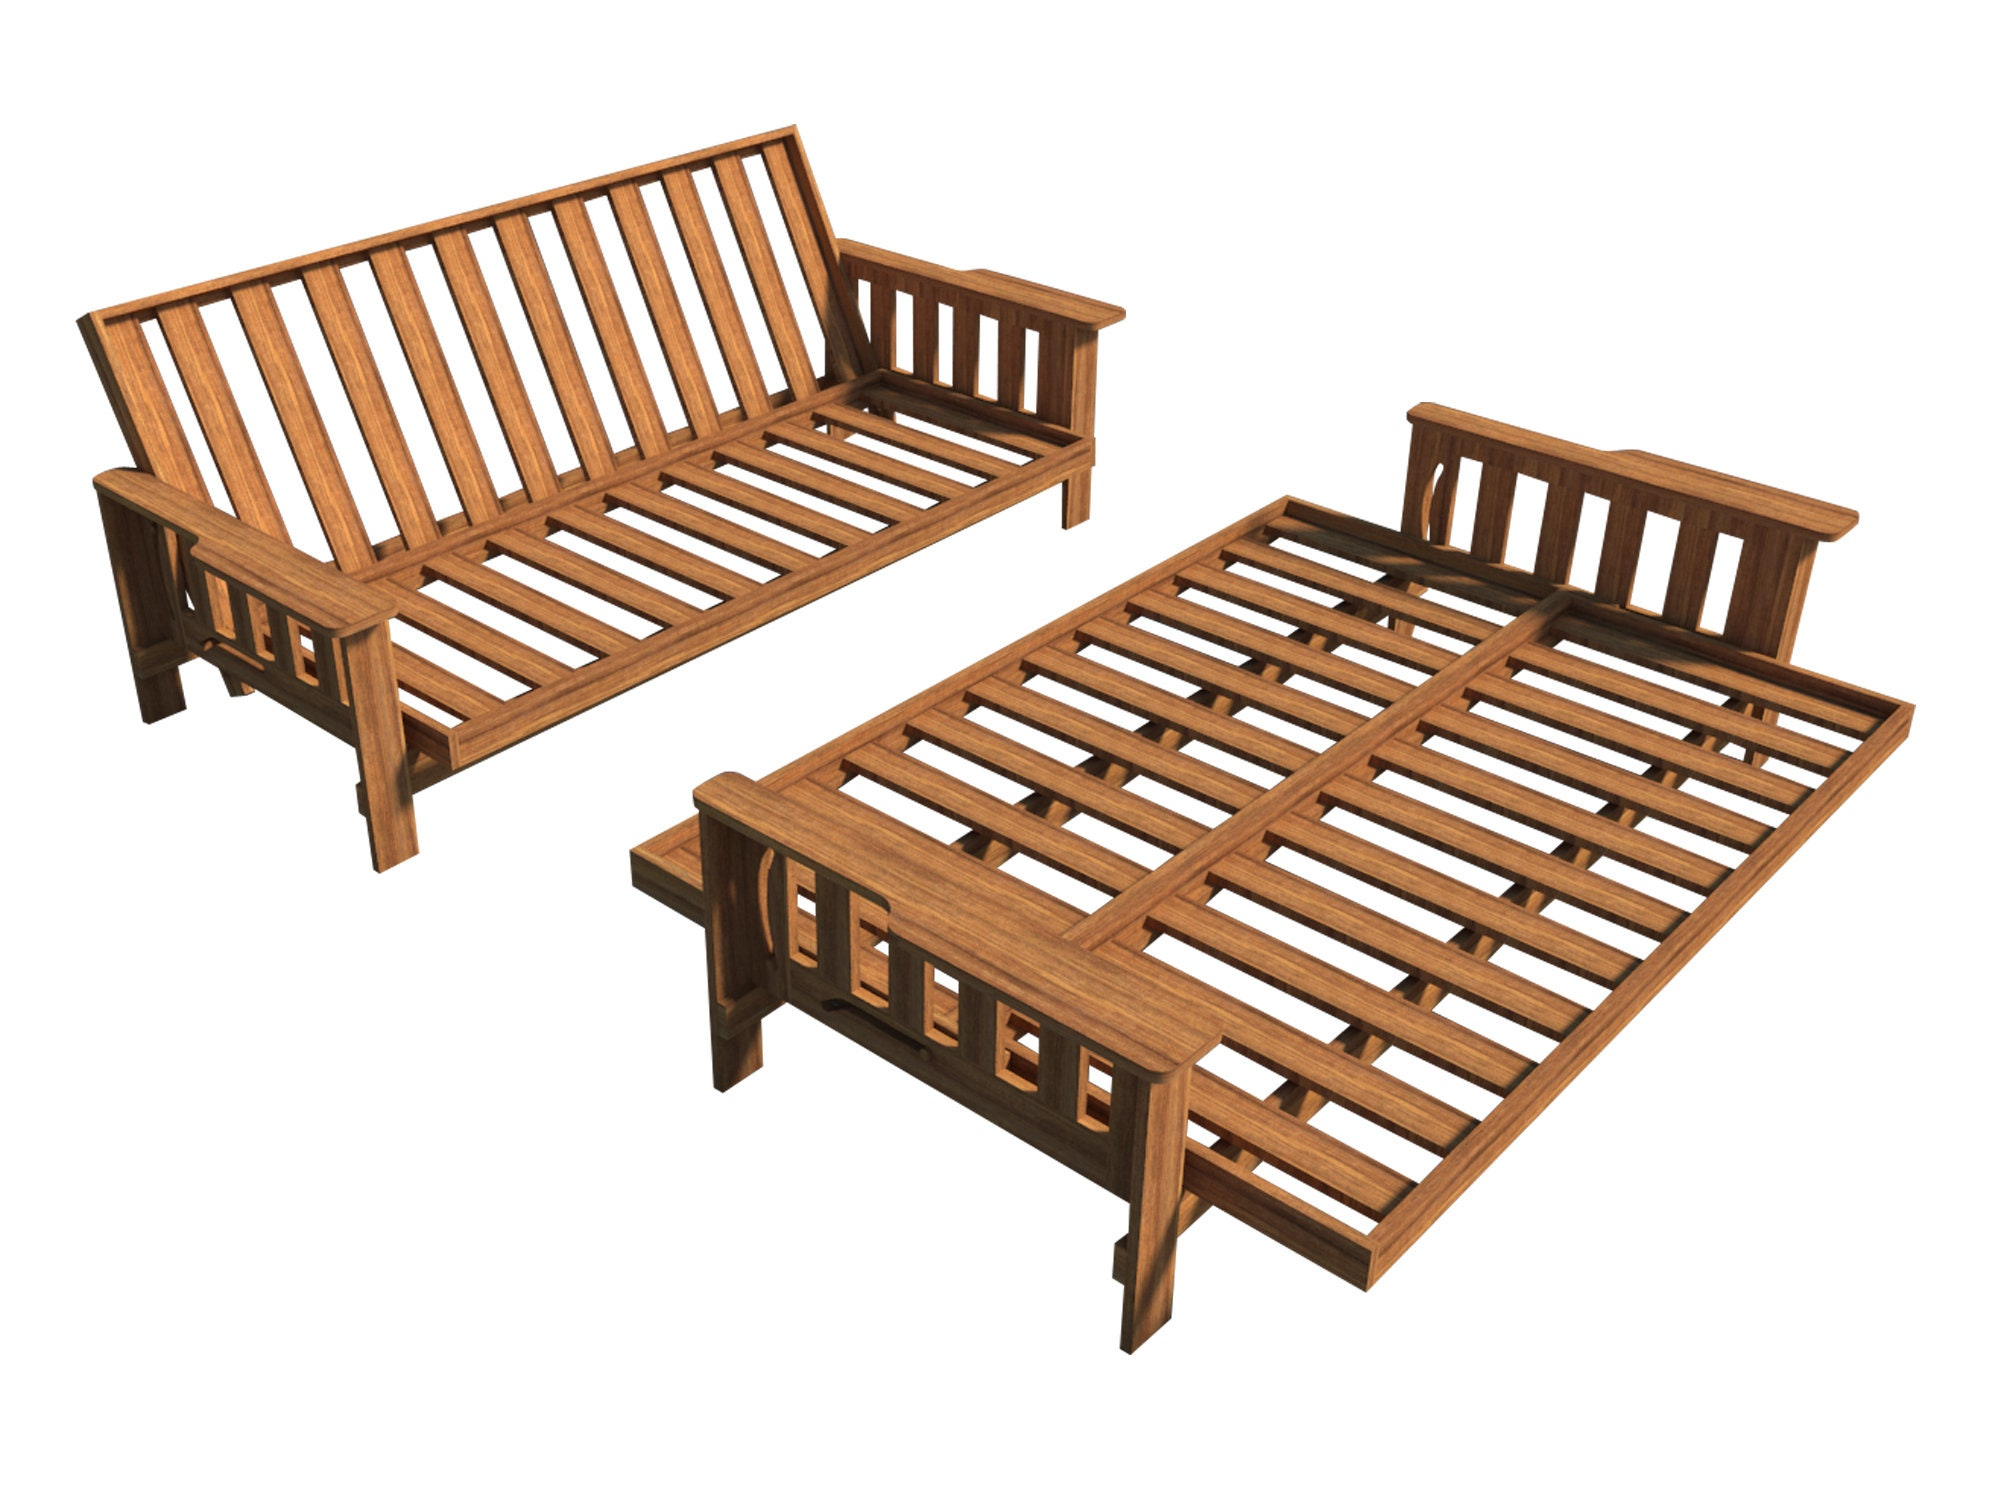 Futon Sofa Bed Plans DIY Lounger Couch Sleeper Furniture ...